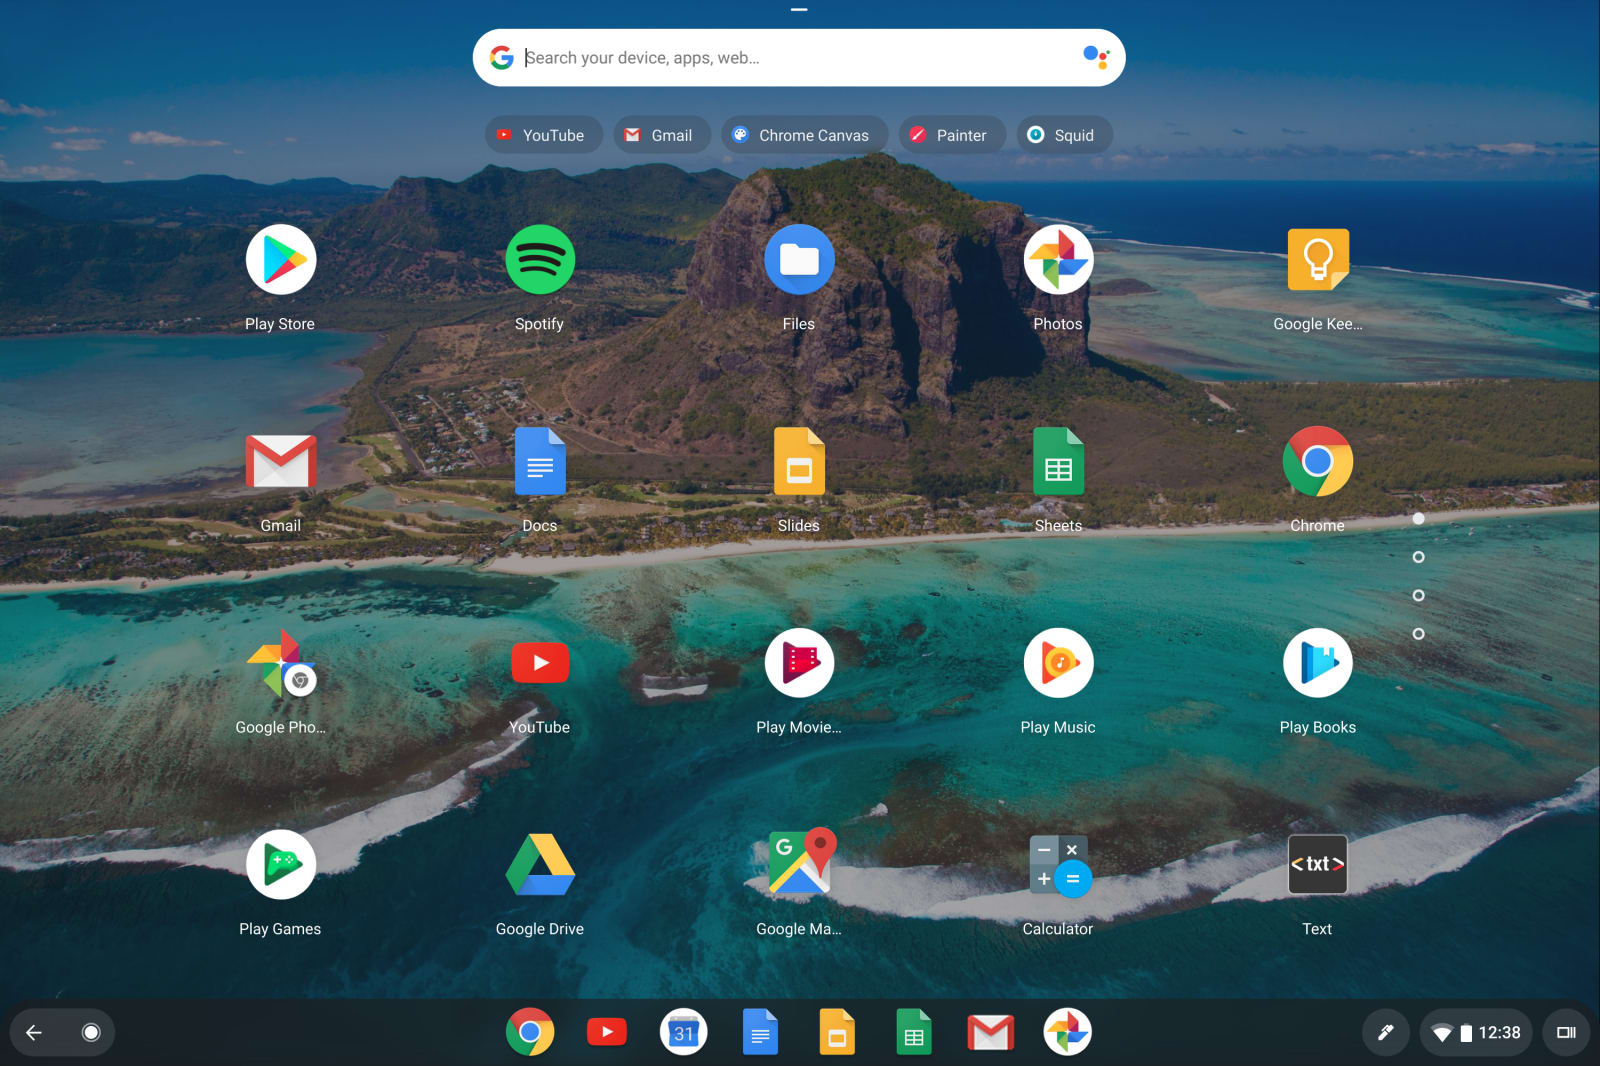 Chrome OS may be the 2-in-1 solution we've been waiting for